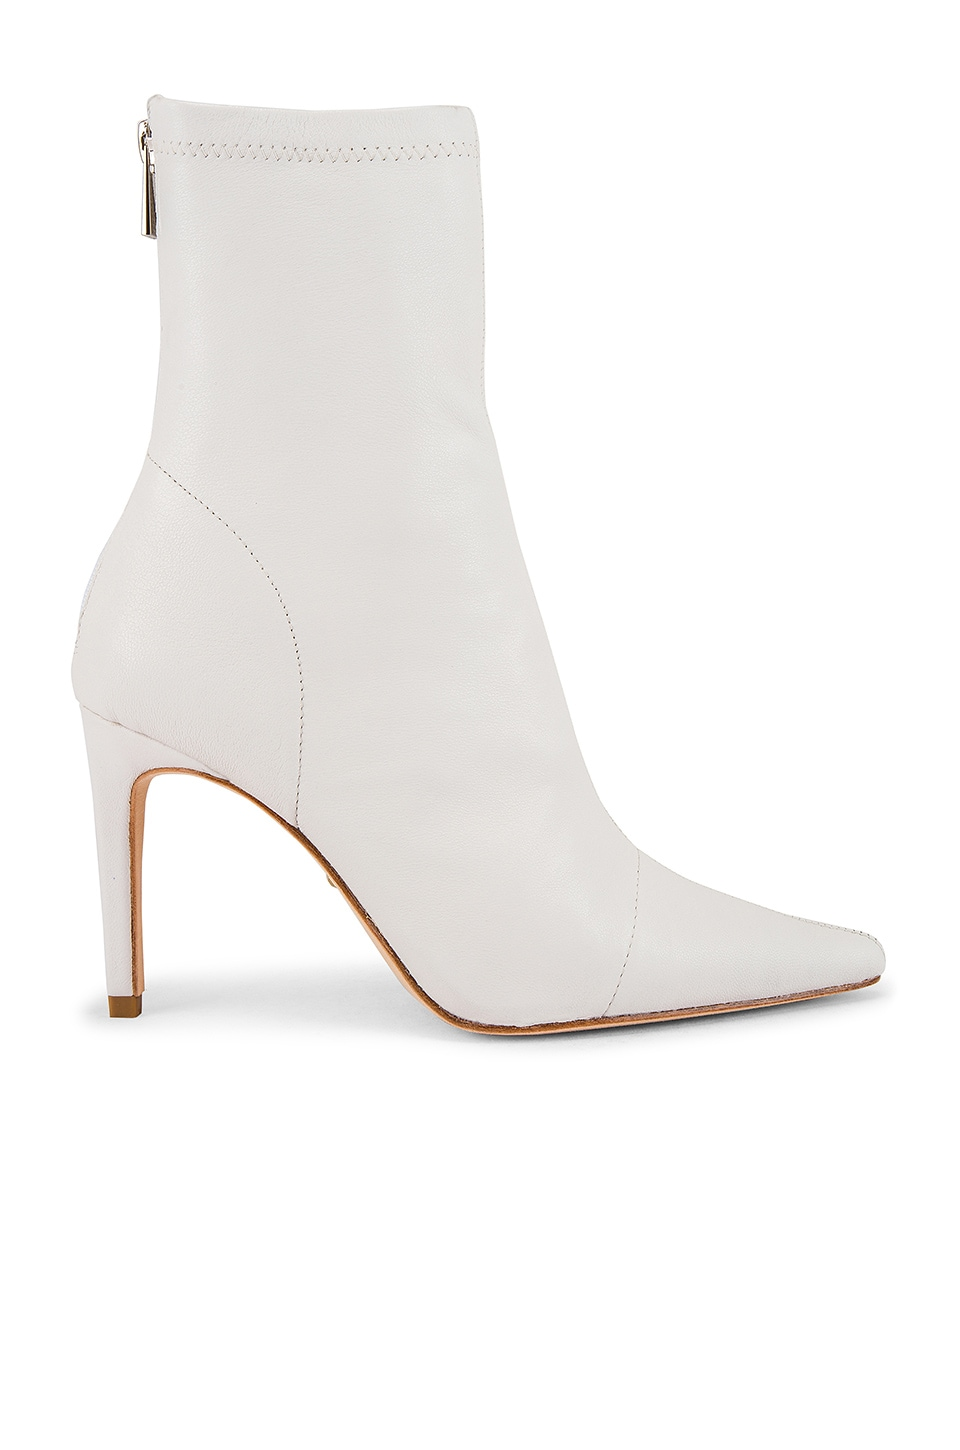 RAYE Bevy Bootie in White Leather